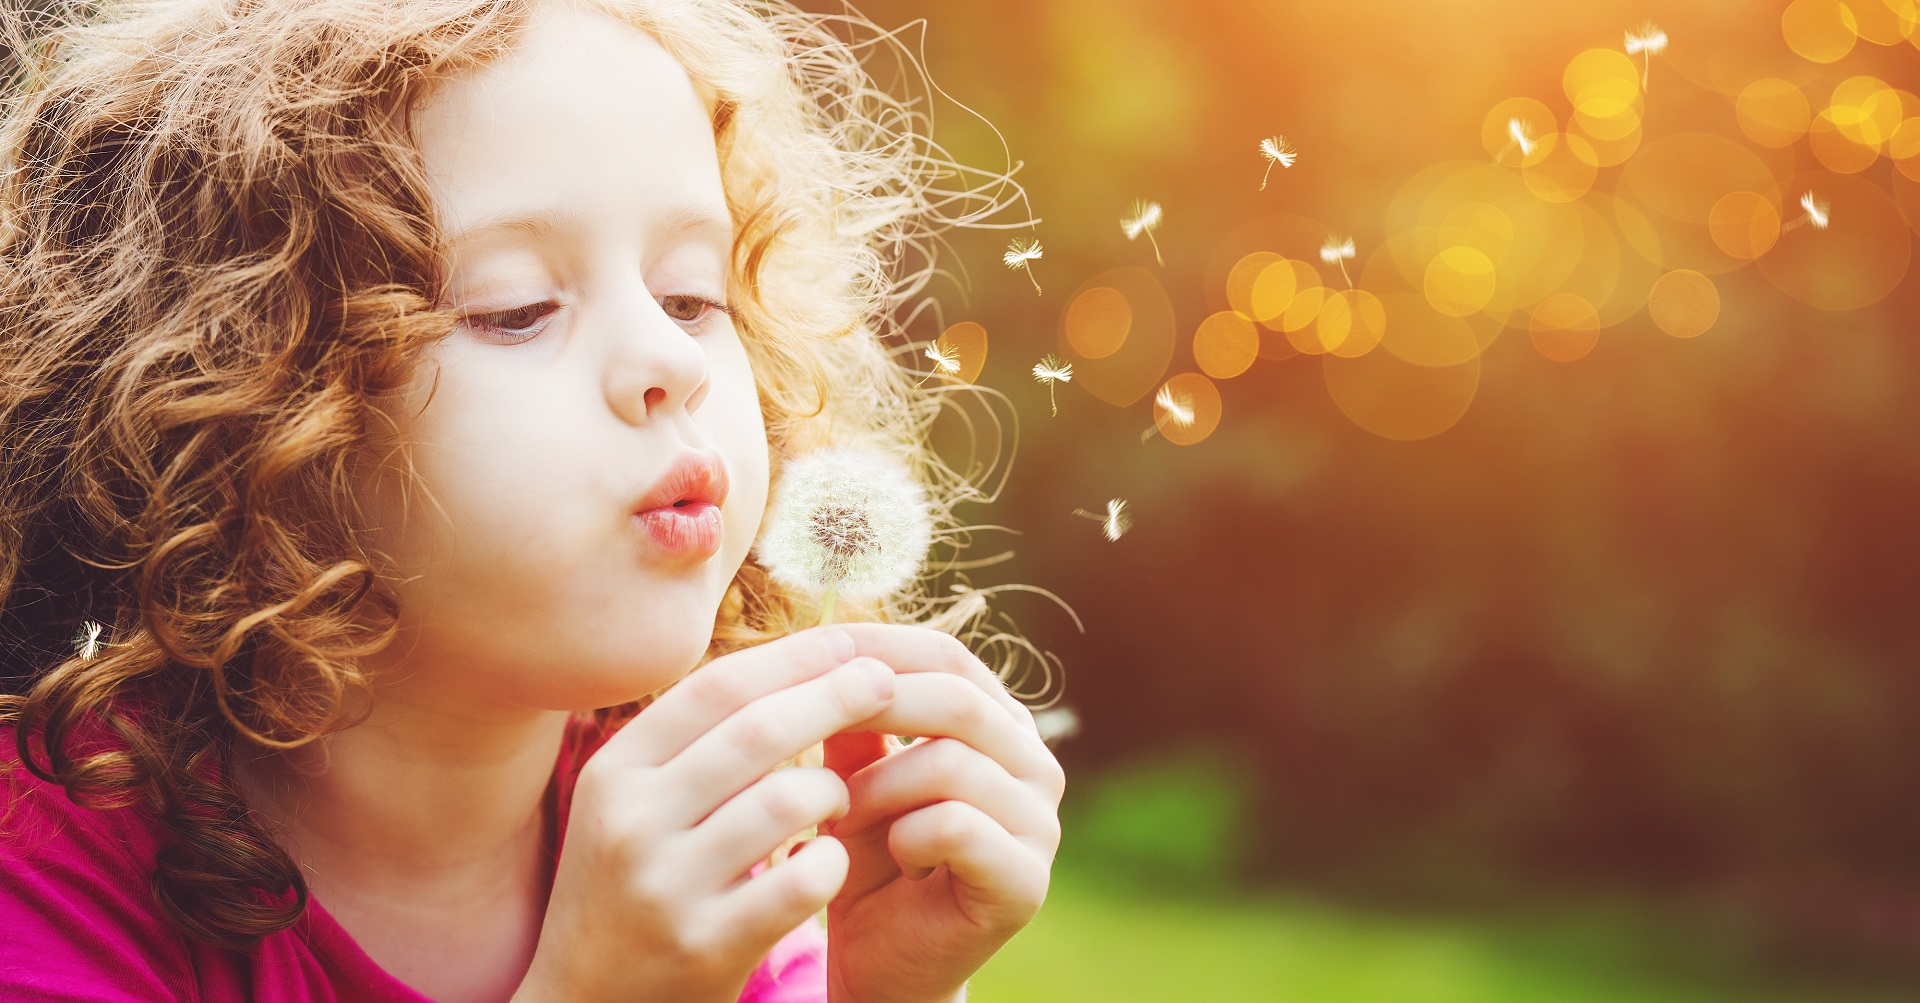 Little girl blowing on dandelion flower